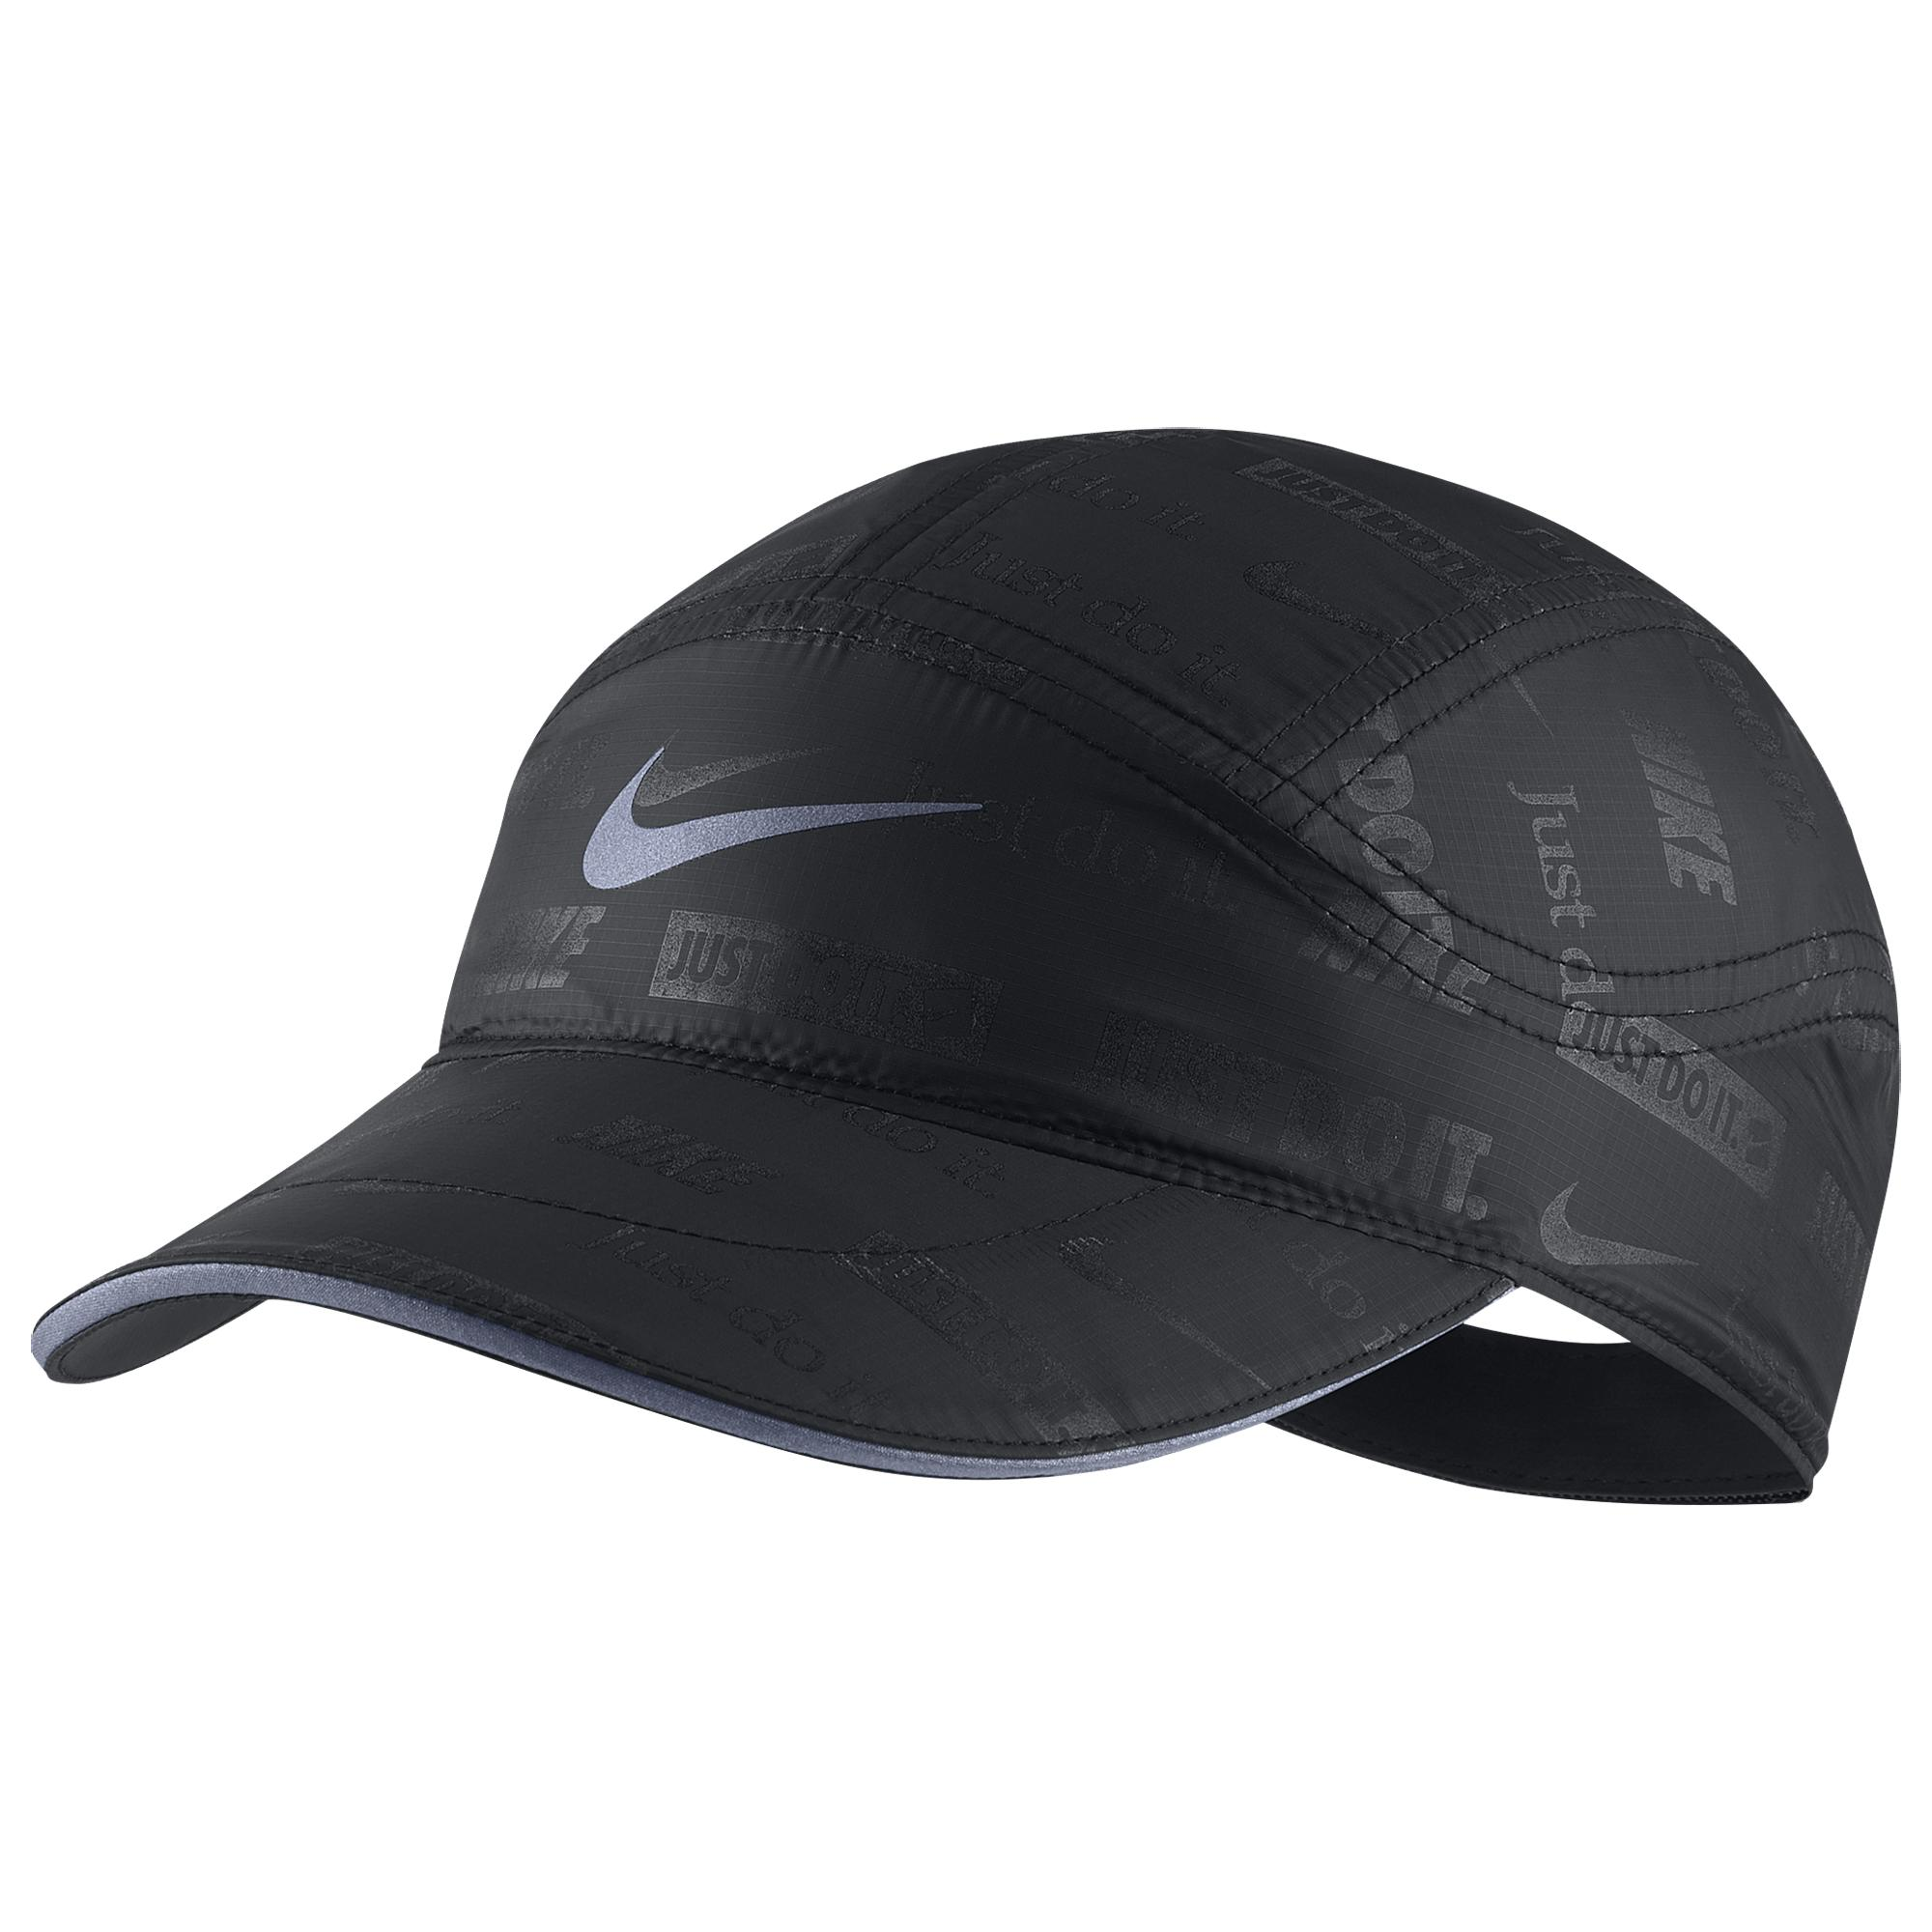 Nike Synthetic Tailwind Ghost Flash Cap In Black For Men Lyst